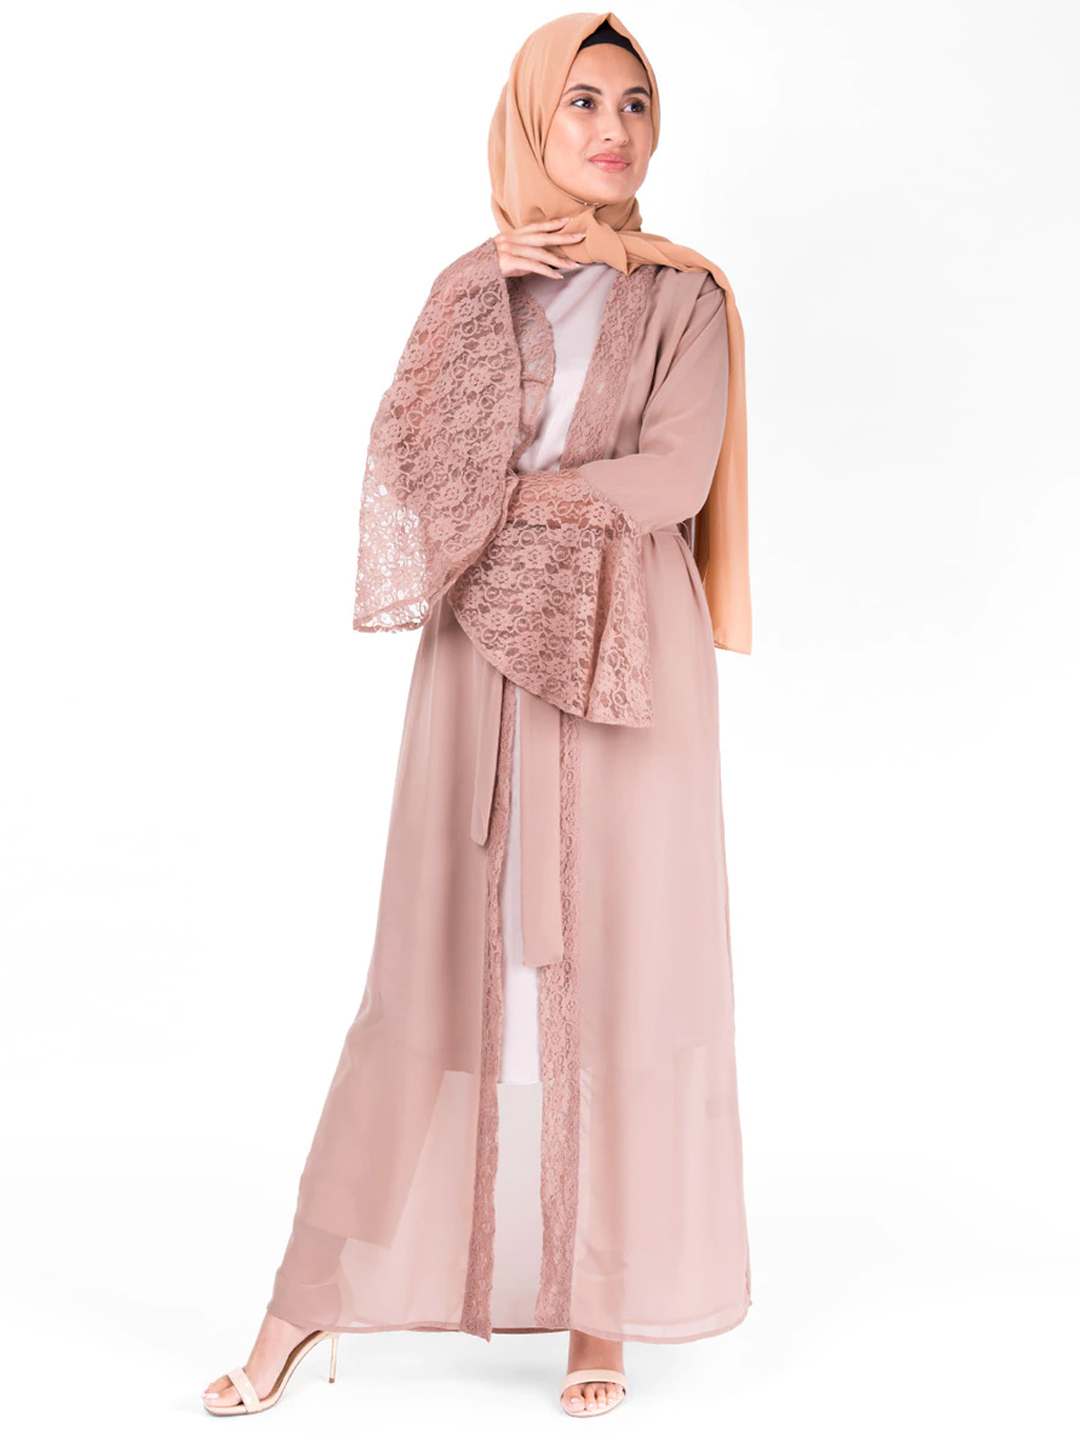 Georgette Outerwear With Lace Bell Sleeve In Puce Pink